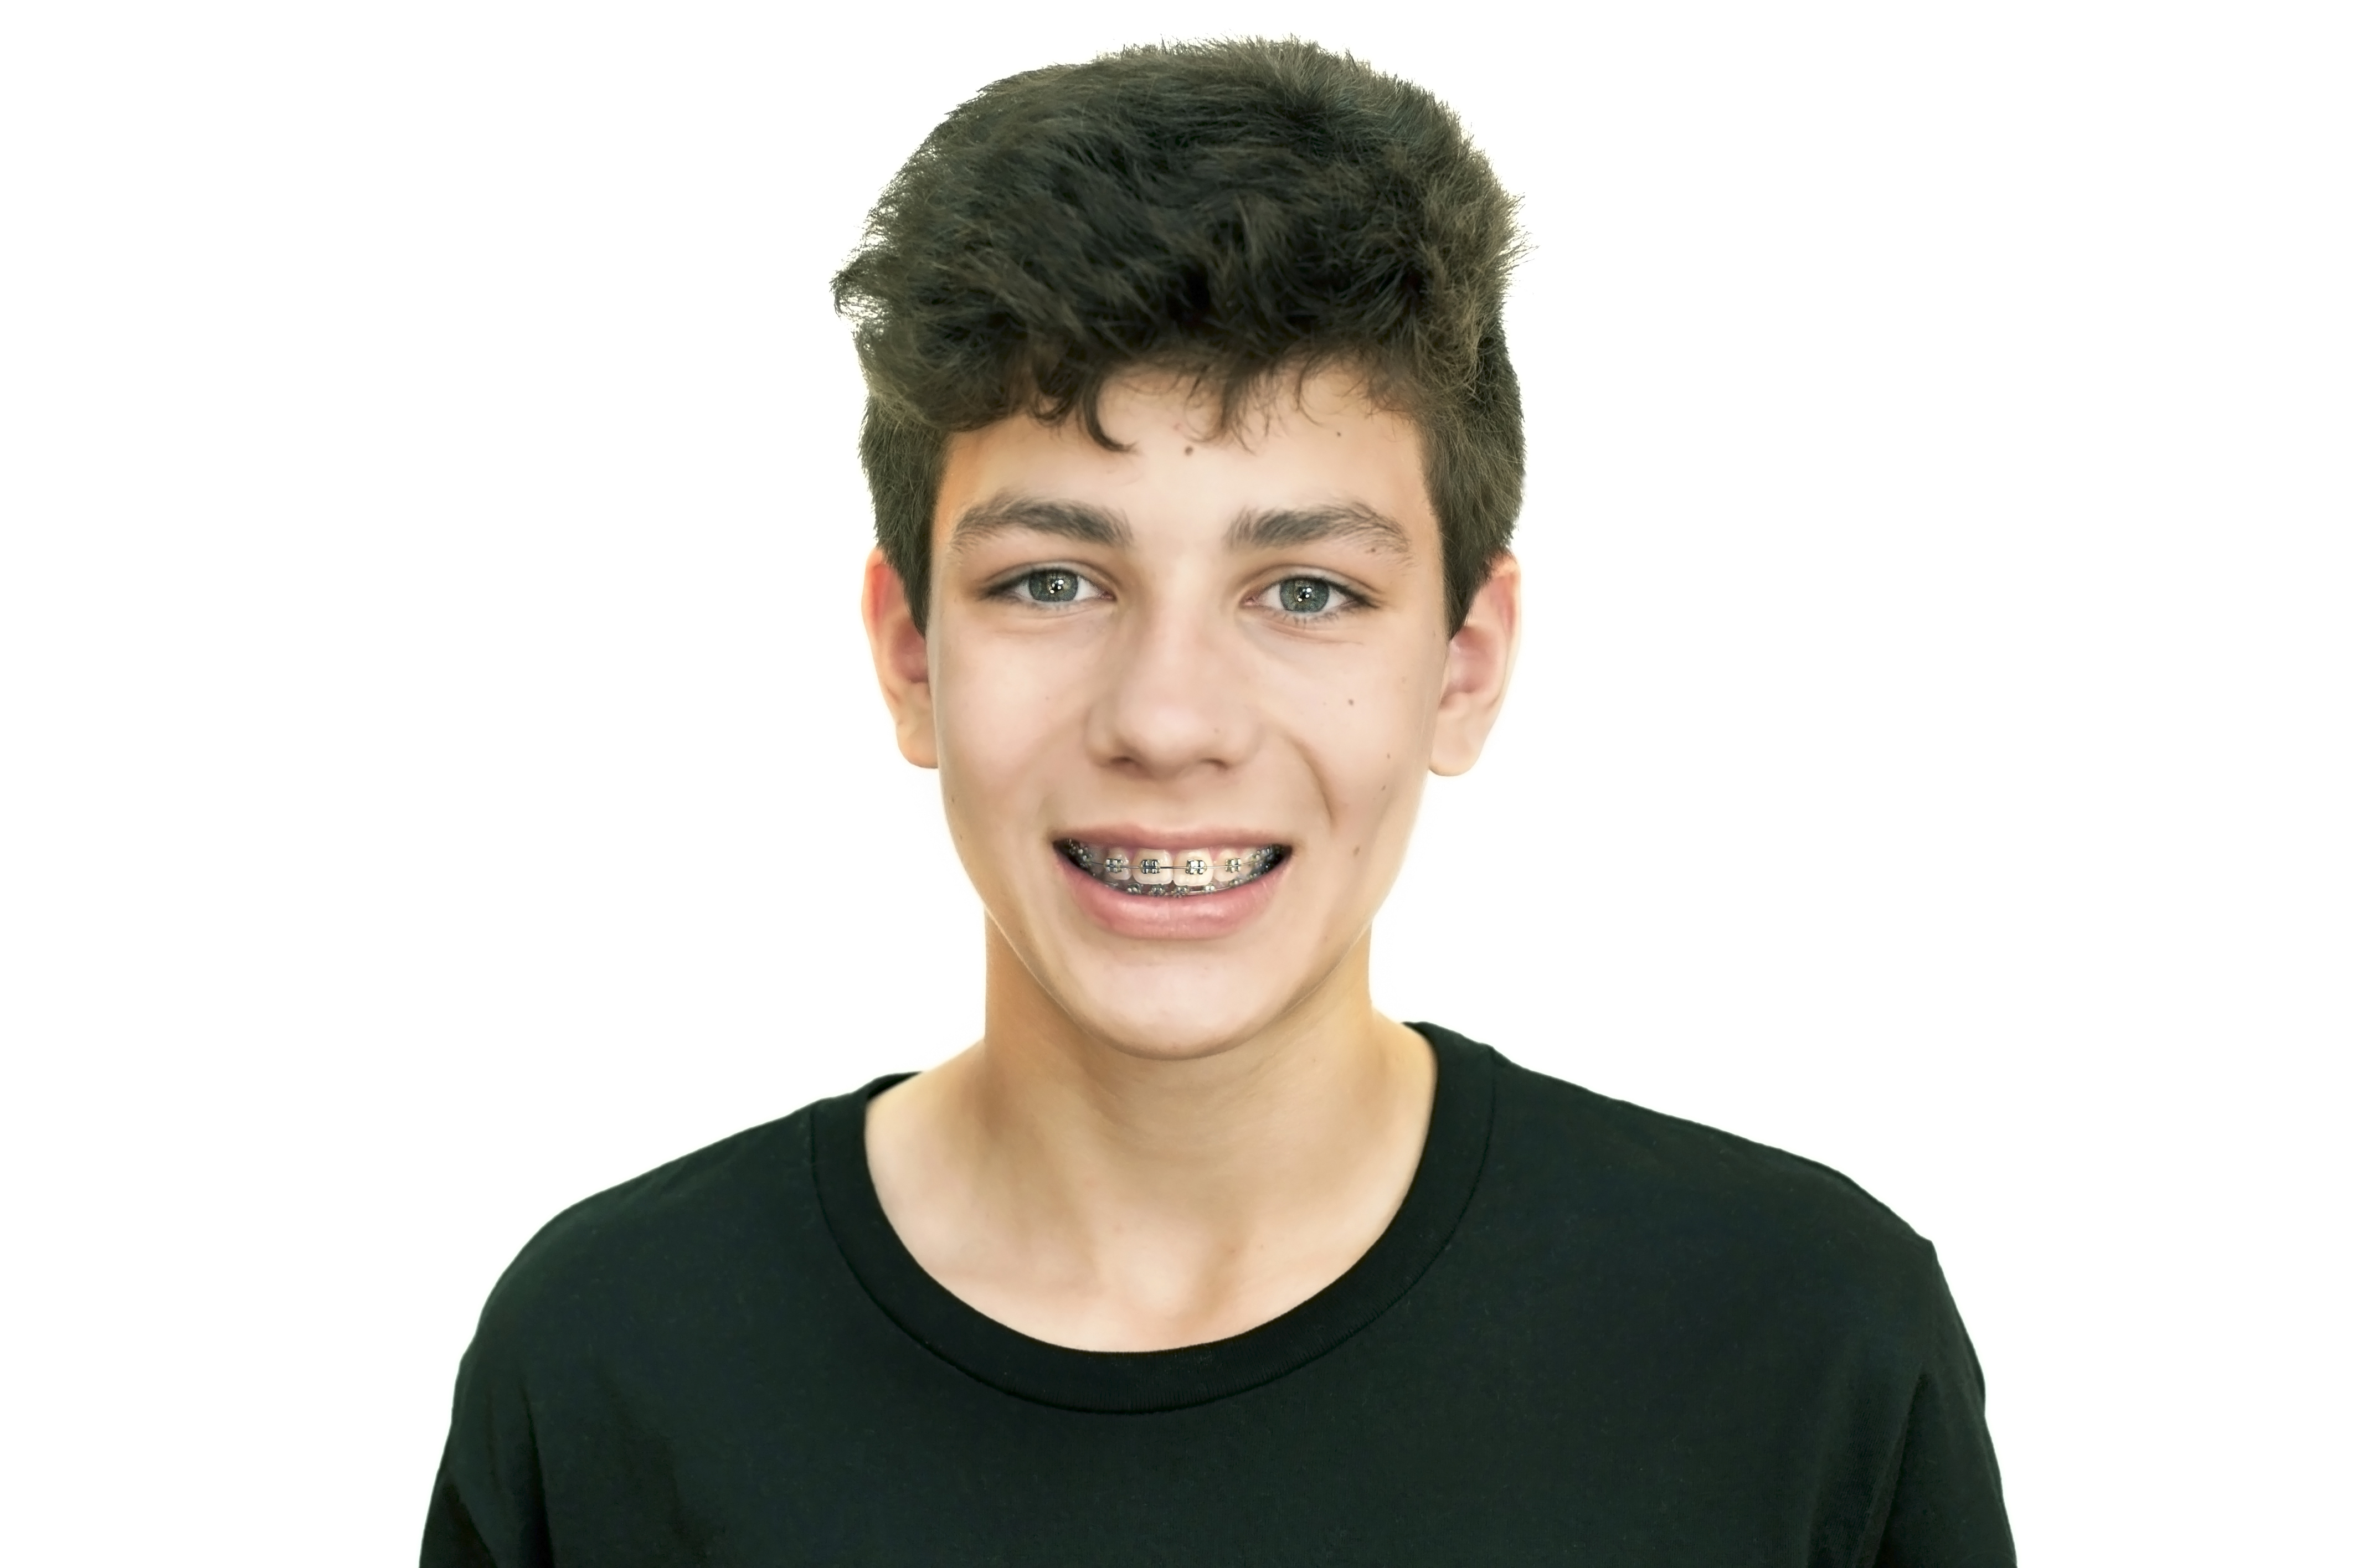 Beautiful teenager in a black shirt on a white background smiling. Clearly visible braces on teeth